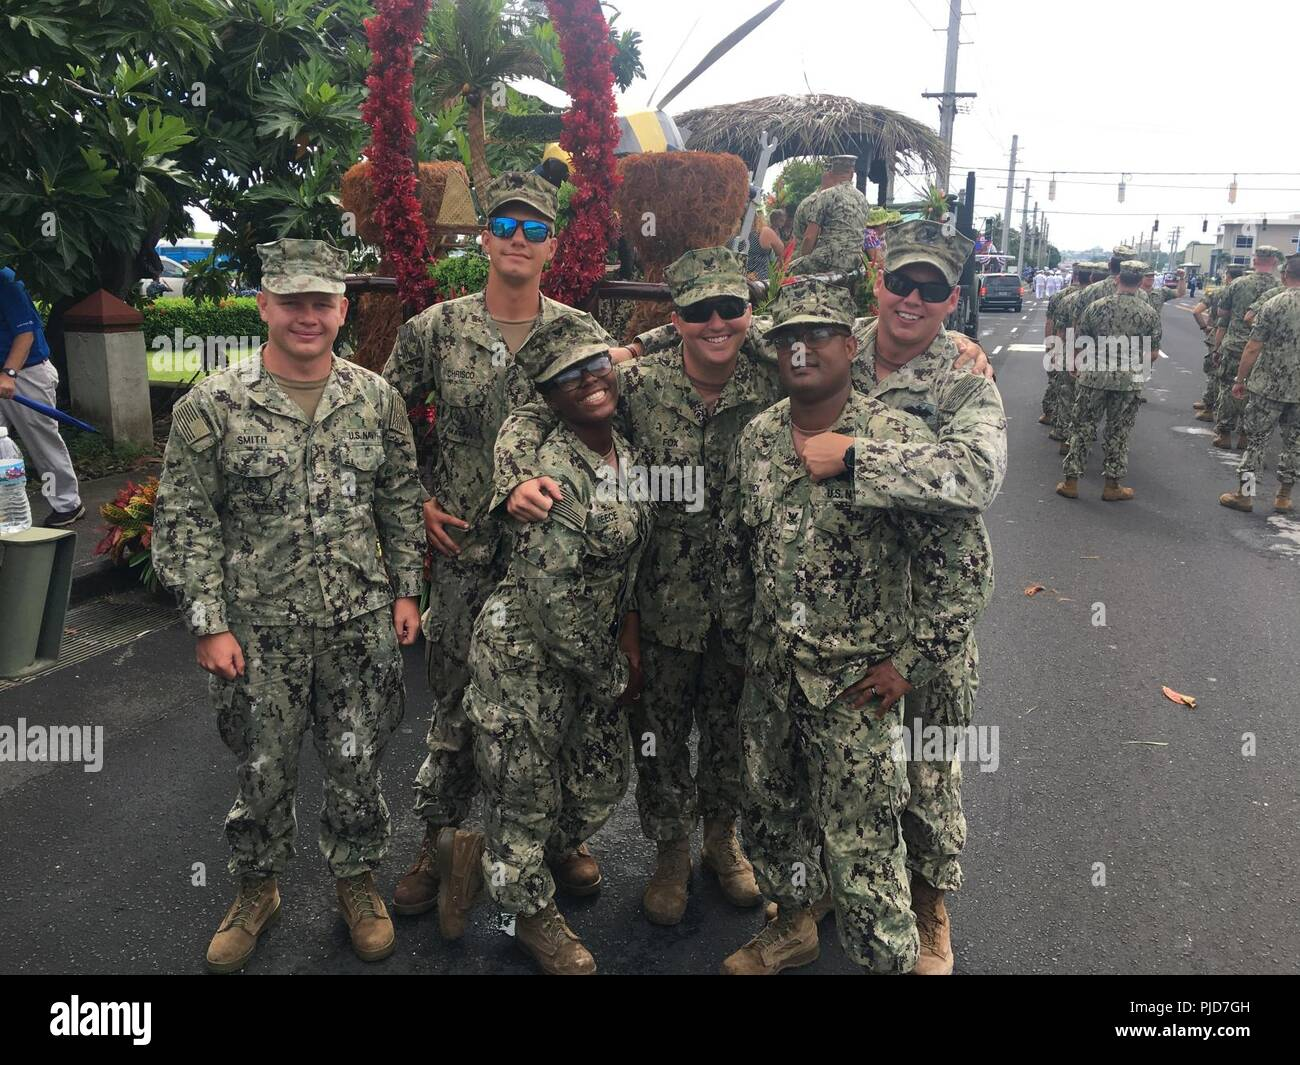 SANTA RITA, Guam (July 21st, 2018) Seabees, assigned to Naval Mobile Construction Battalion Eleven (NMCB) 11, Detachment Guam, pose for a photo during the Liberation Day Parade. NMCB-11 is forward deployed to execute construction, humanitarian and foreign assistance, and theater security cooperation in the 7th Fleet area of operations. - Stock Image